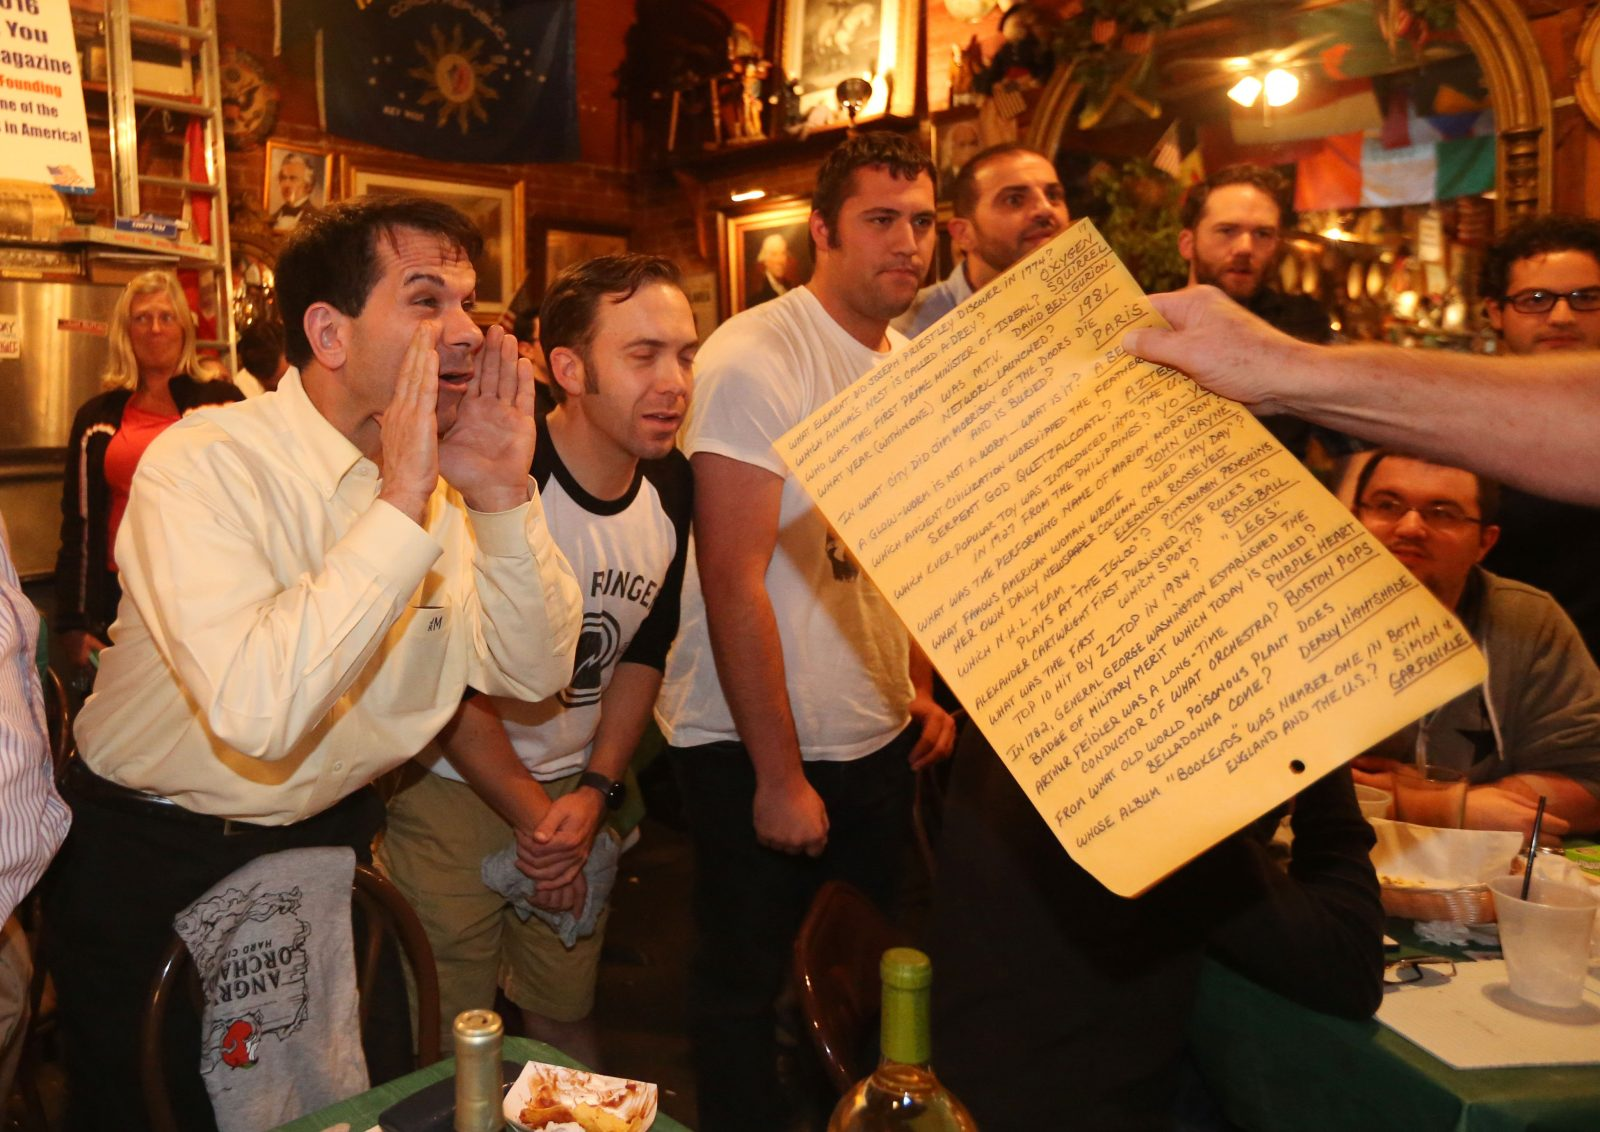 Joseph Montante, left, shouts out the correct answer during the popular First Tuesday Trivia Night at Founding Father's Pub.  (Sharon Cantillon/Buffalo News)